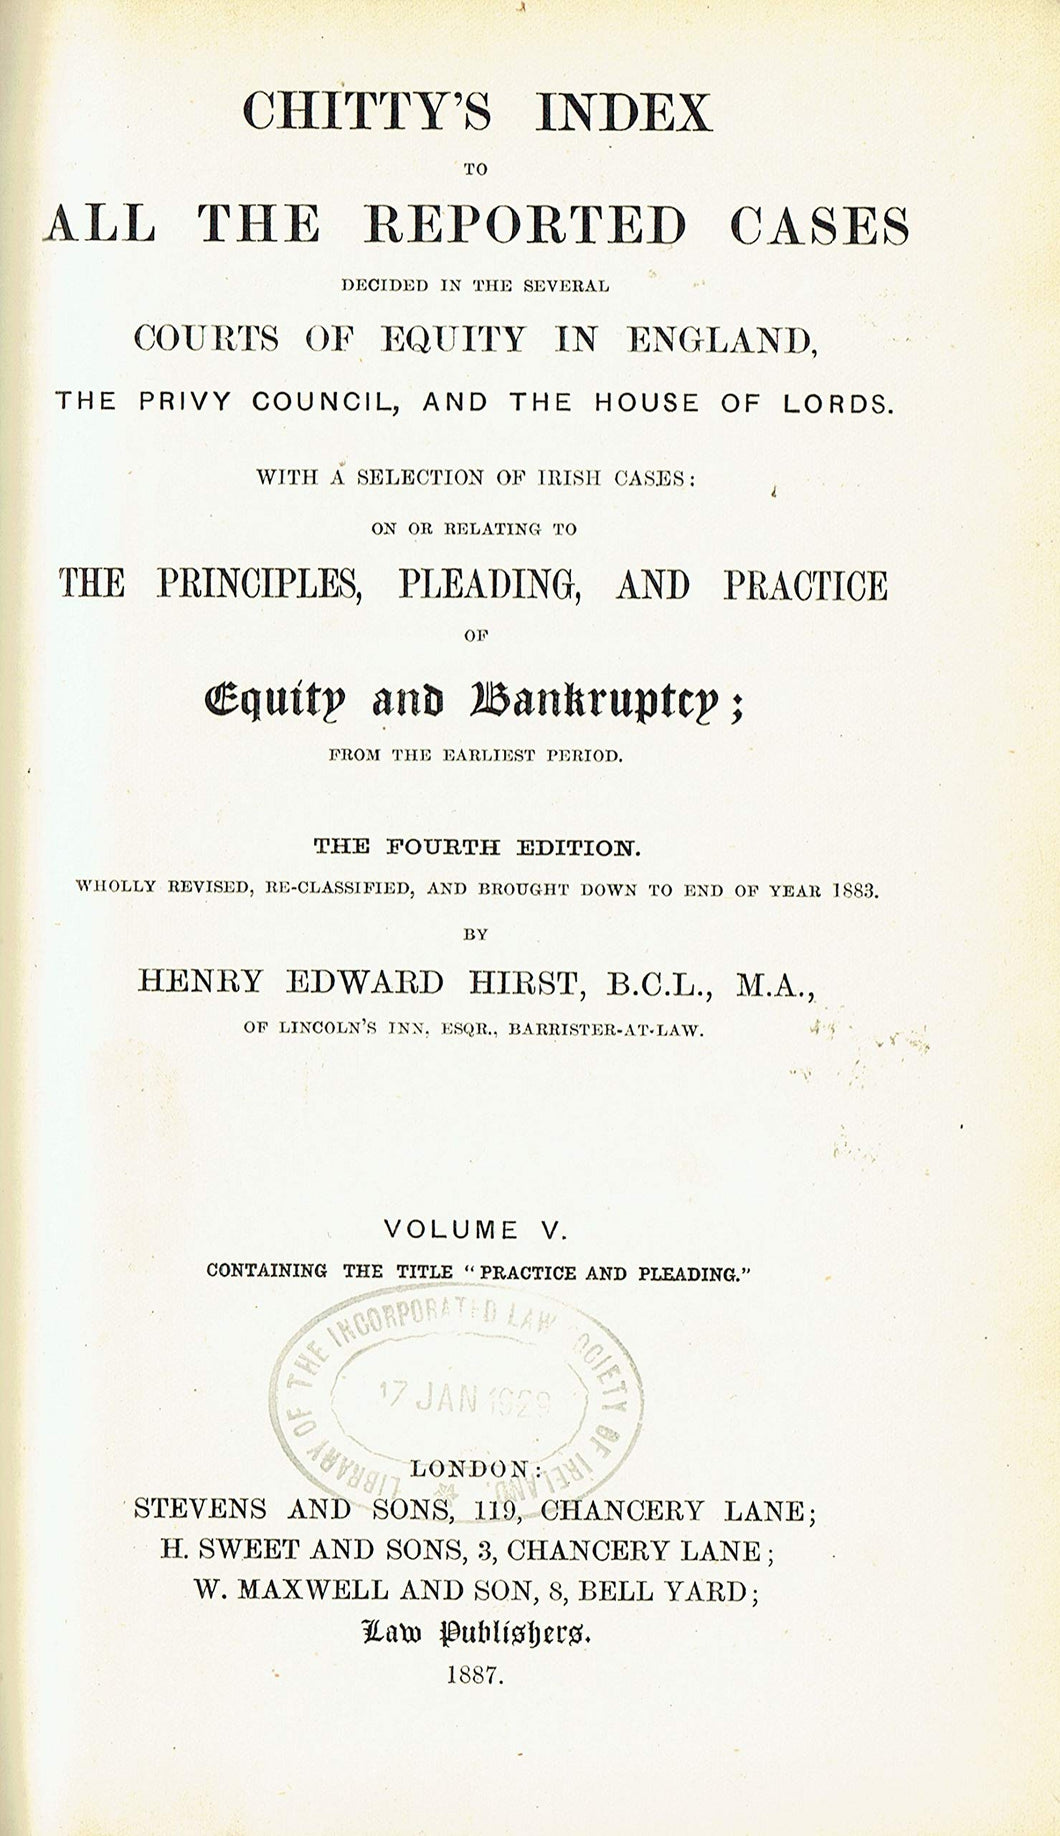 Chitty's Equity Index, Fourth Edition Volume V (Volume 5) - Chitty's Index to All the Reported Cases Decided in the Several Courts of Equity in England, the Privy Council, and the House of Lords